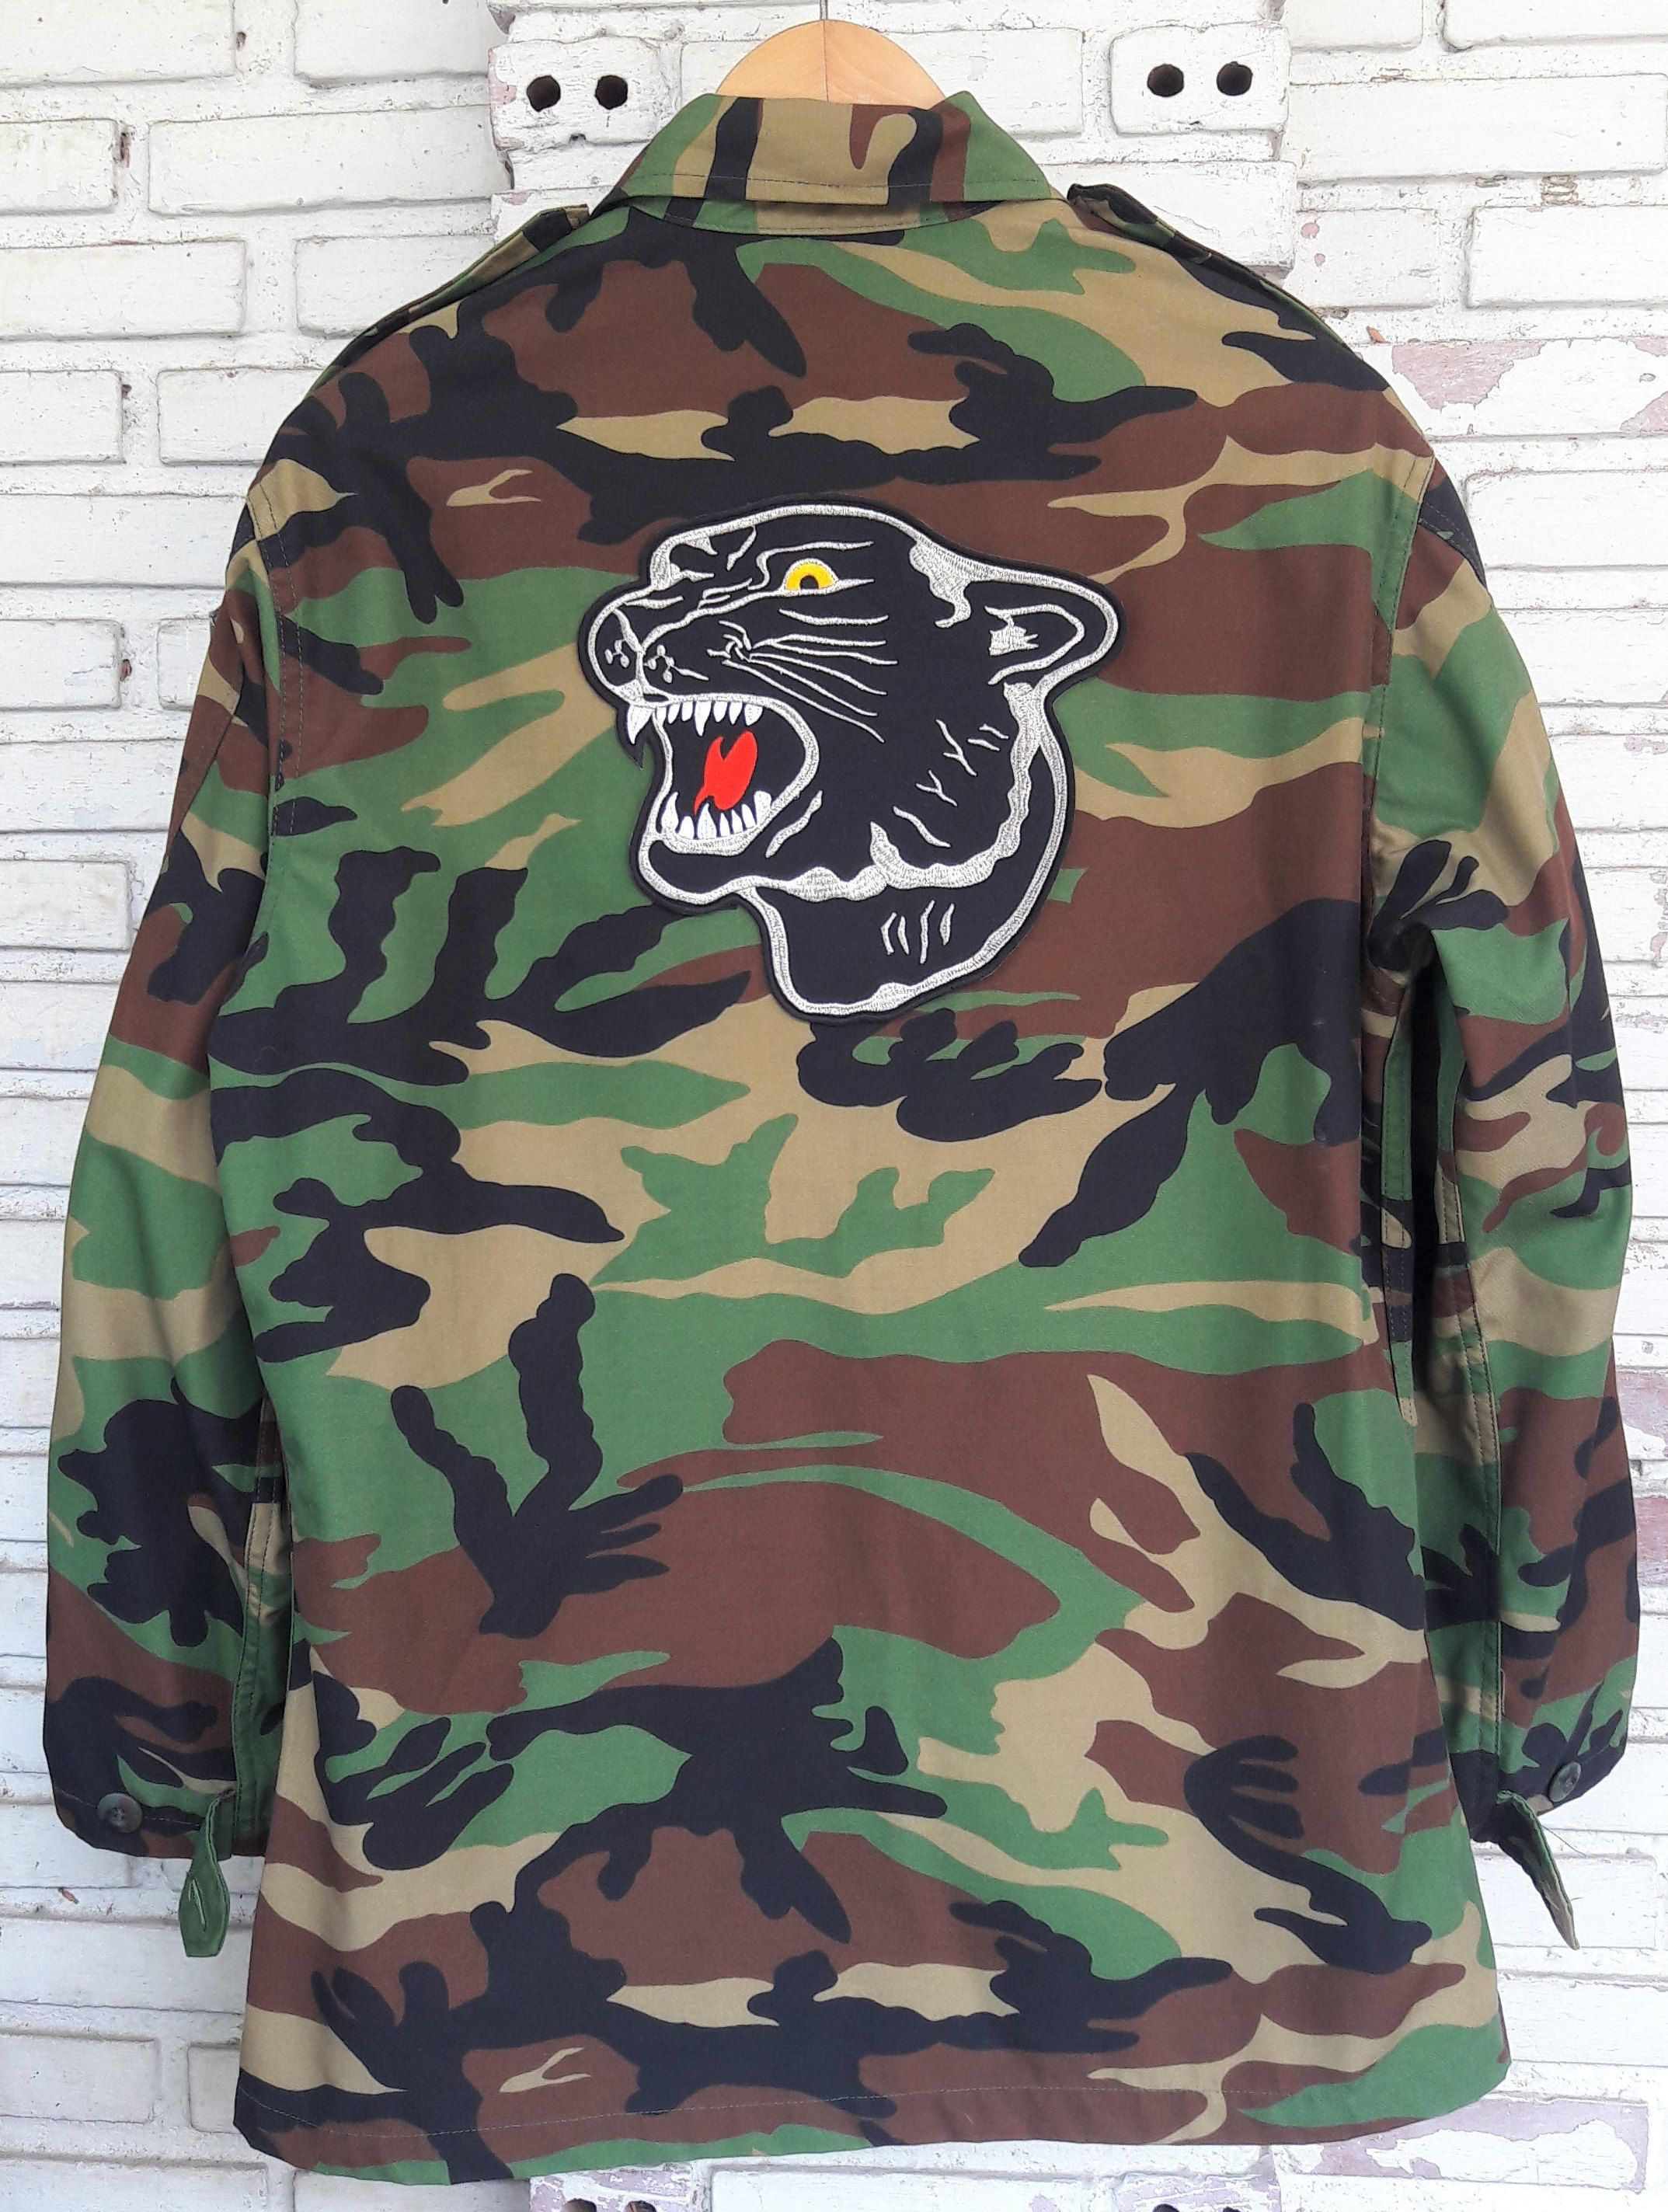 Black Panther Camo Jacket   Hand Reworked Vintage Military Camo Jacket with  Patches   Patched Military Camouflage Jacket Size  L by  KodChaPhornJacket465 on ... ca201383e